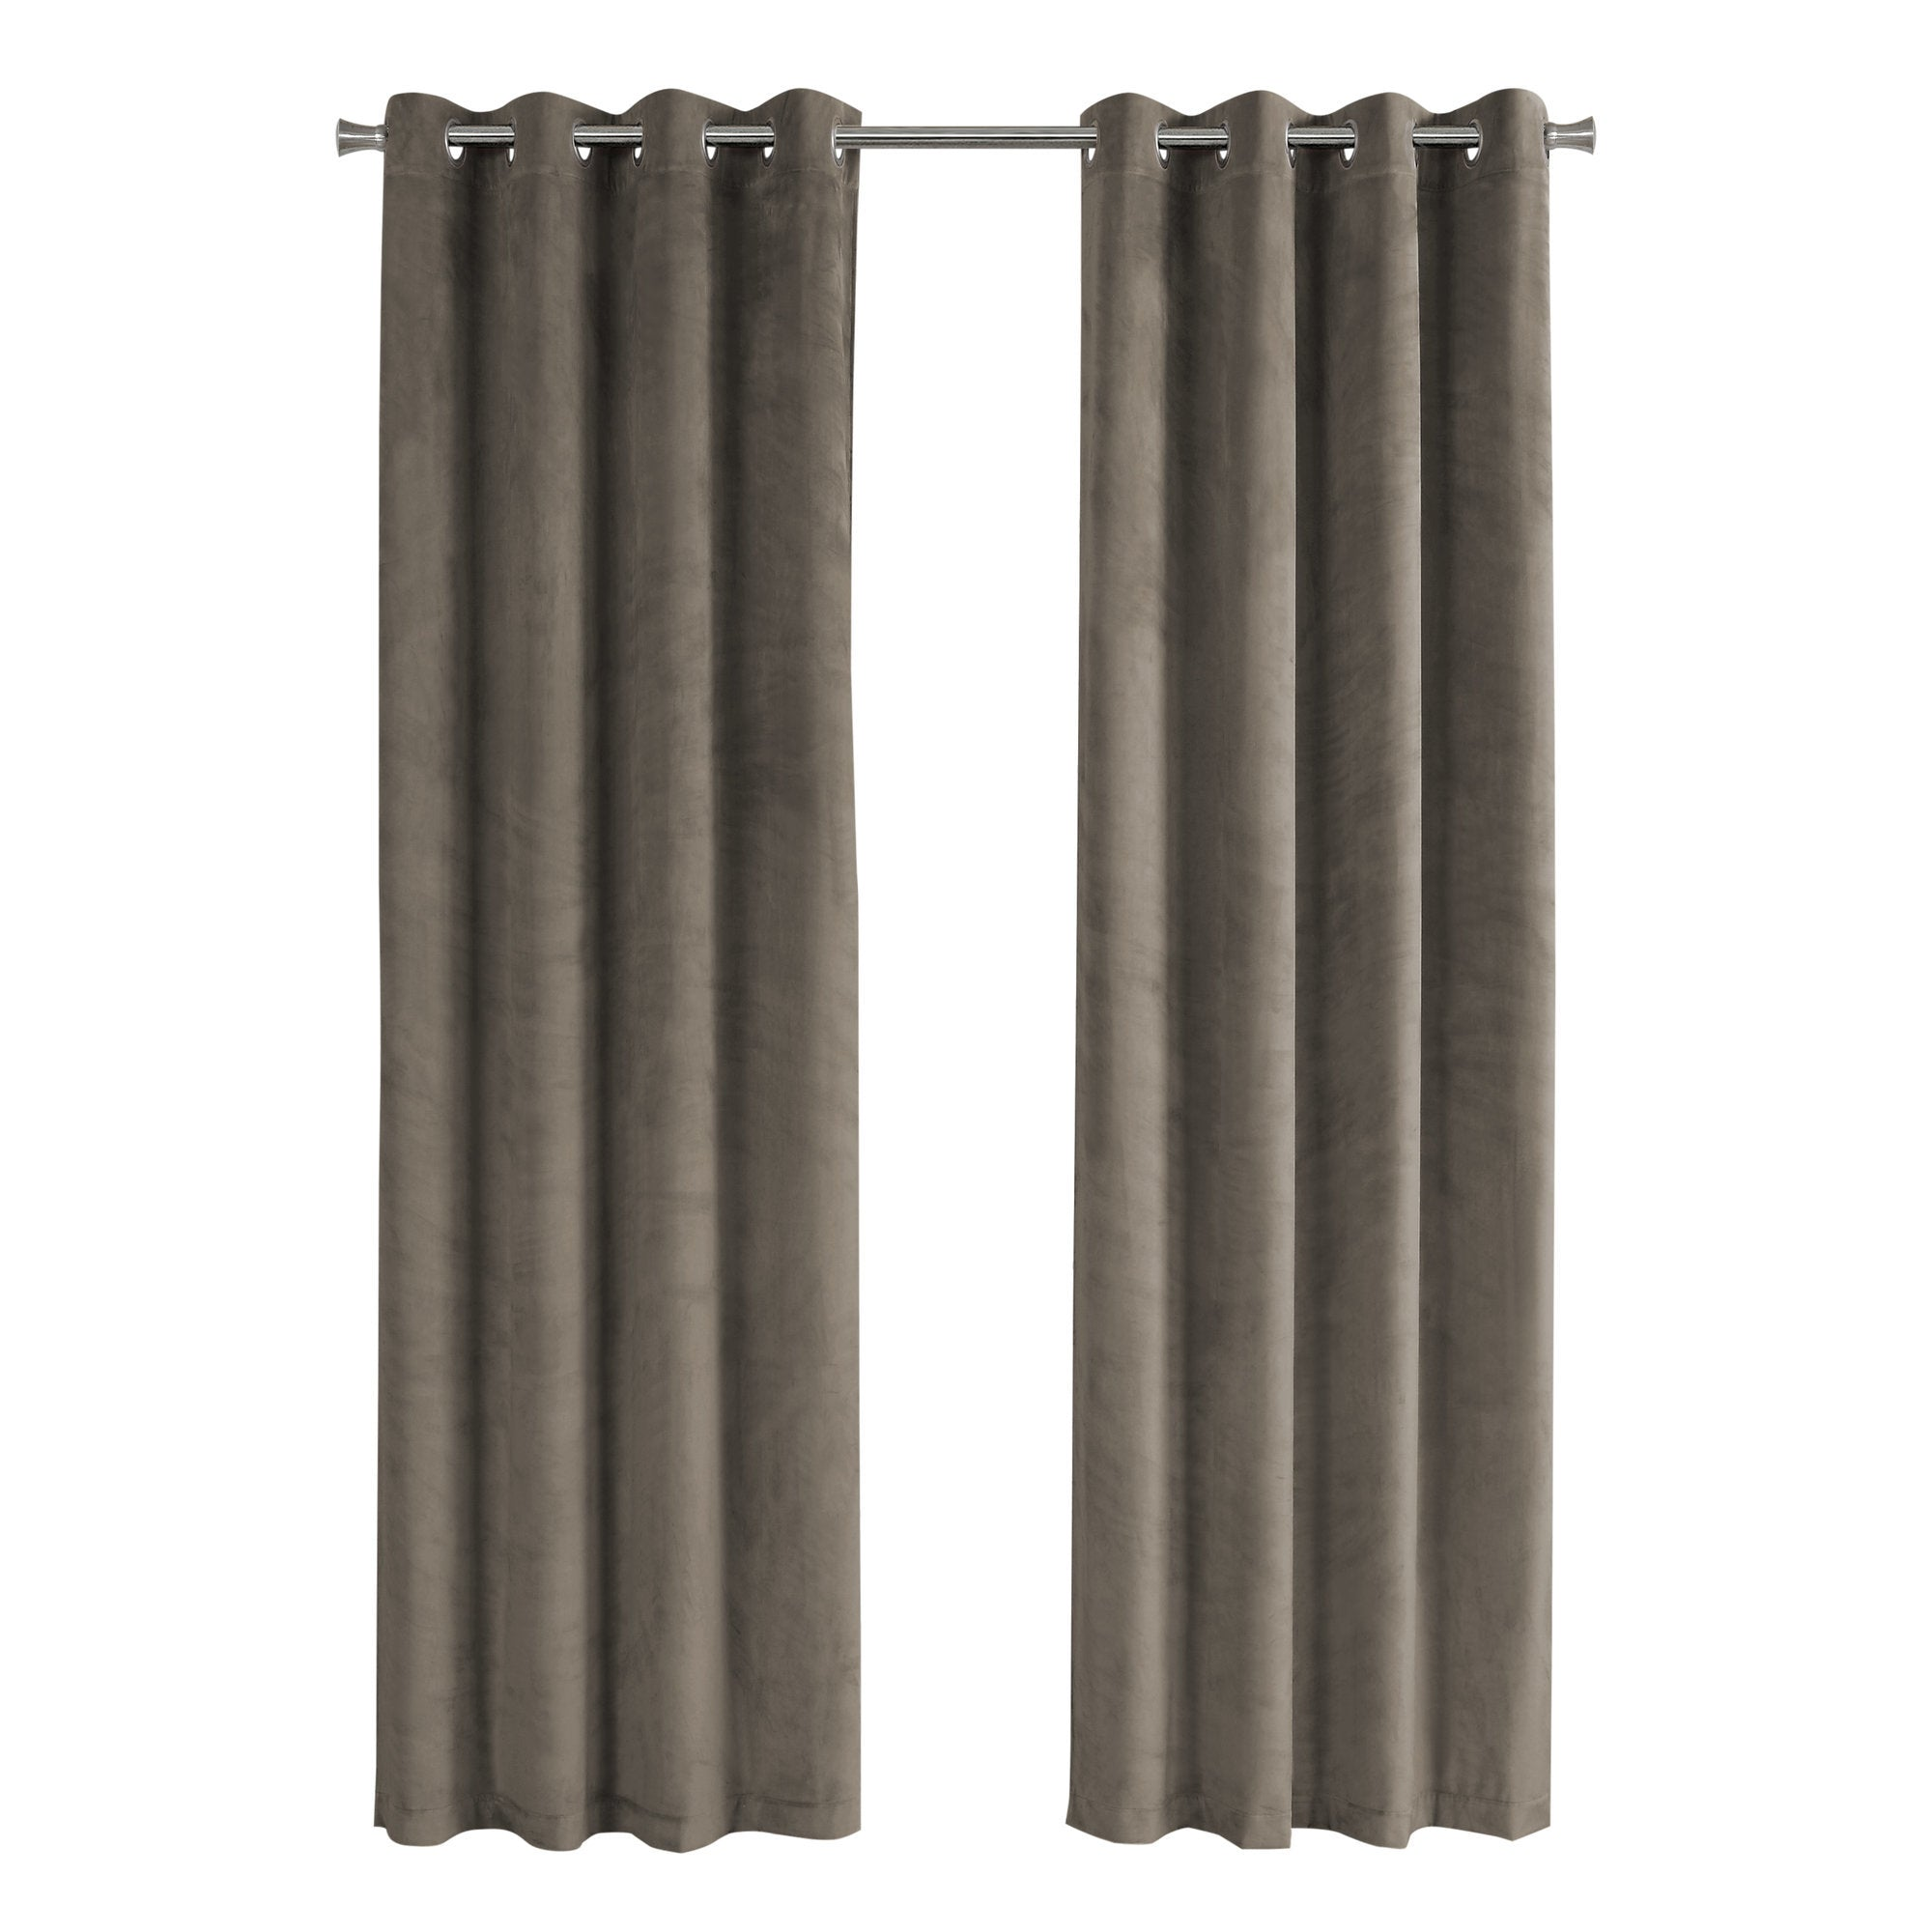 "52"" x 95"" Taupe, Room Darkening - Curtain Panel 2pcs"